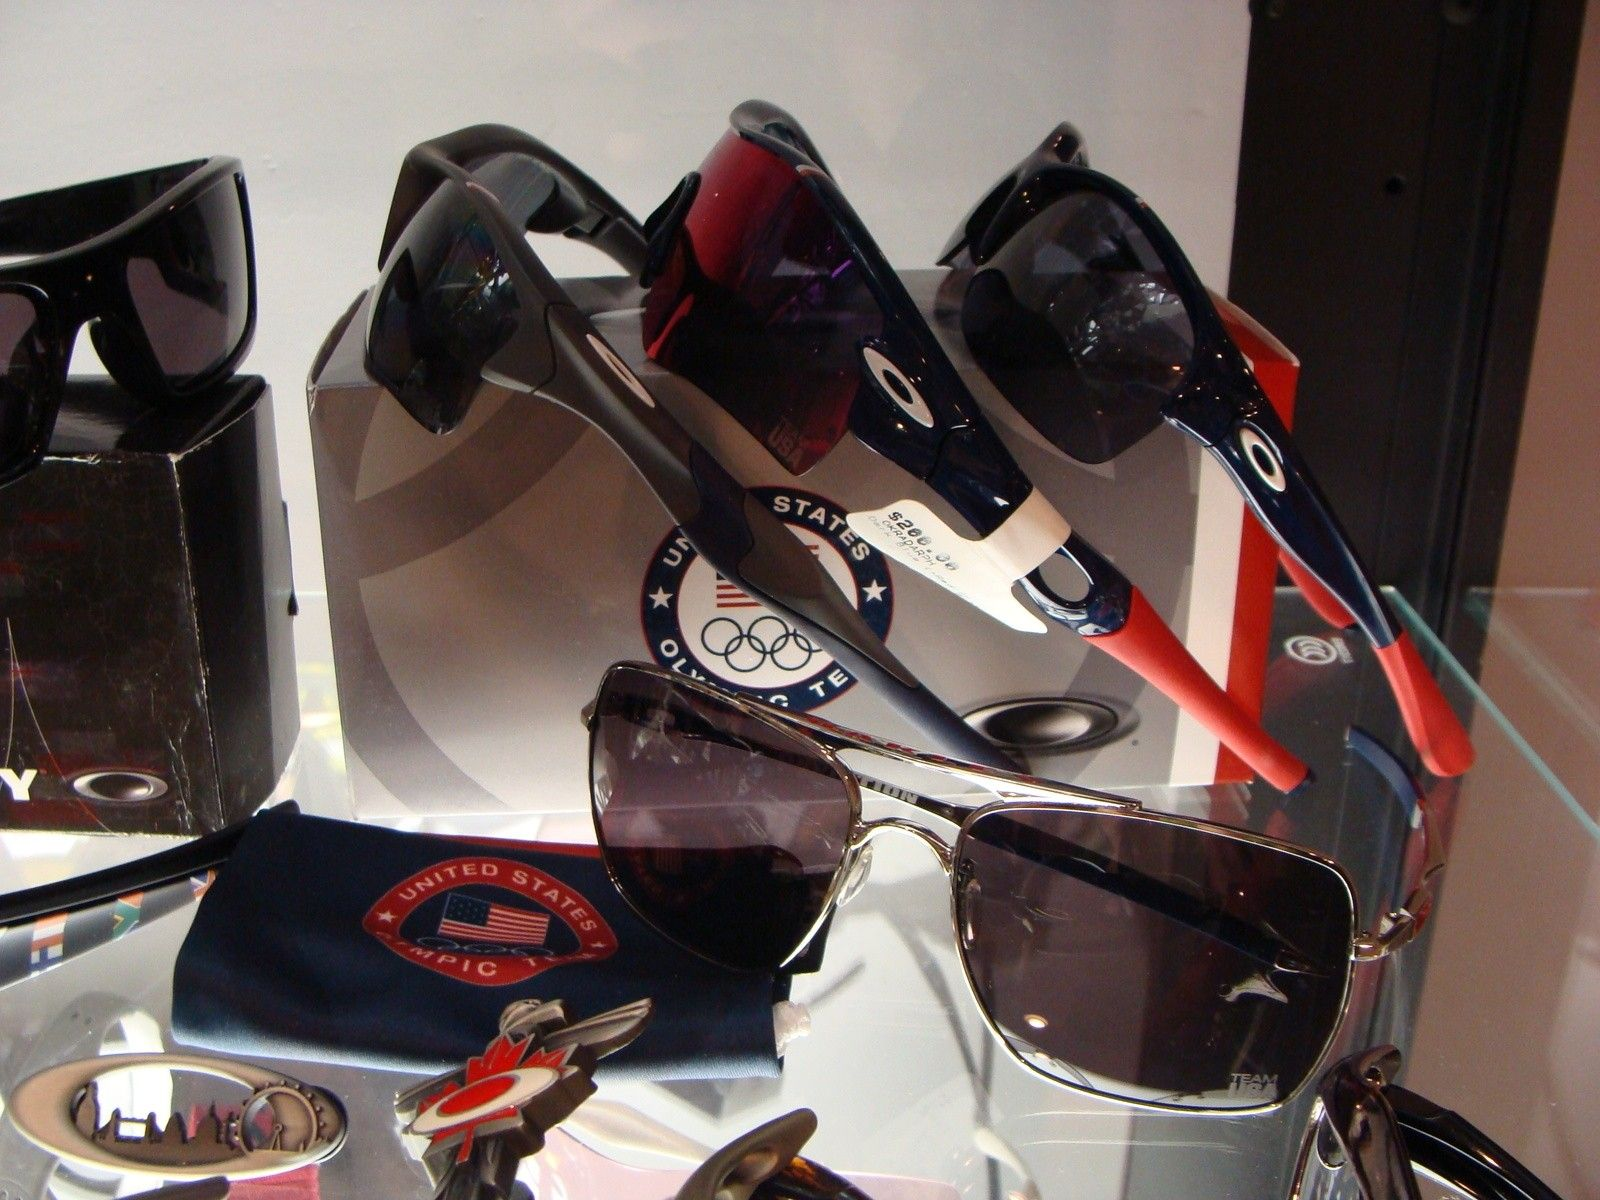 Preview Of My Oakley Collection - DSC07630.JPG